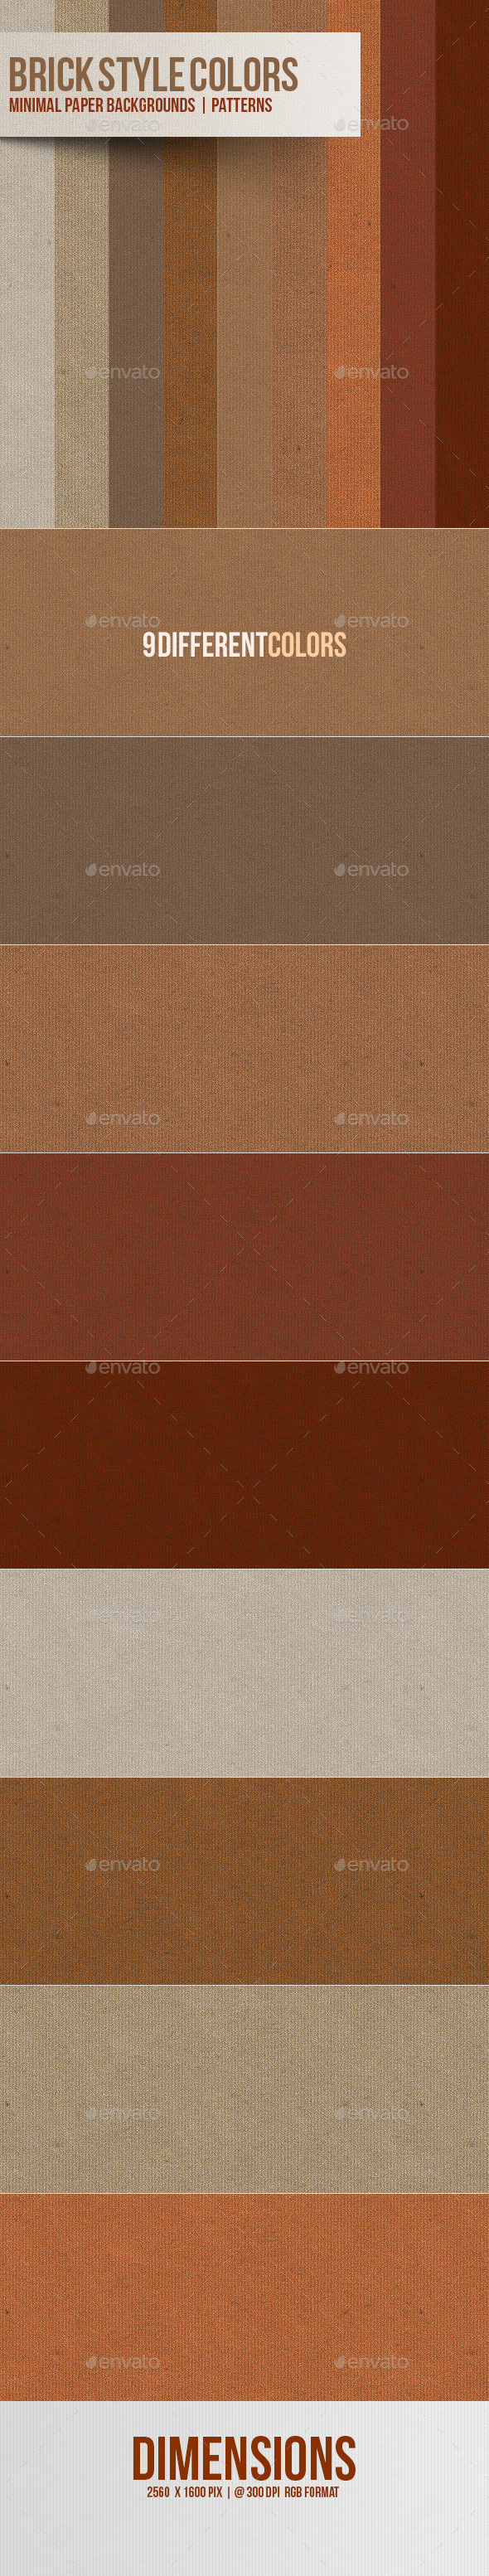 Minimal Paper BG | Patterns | Brick Style Colors - Patterns Backgrounds